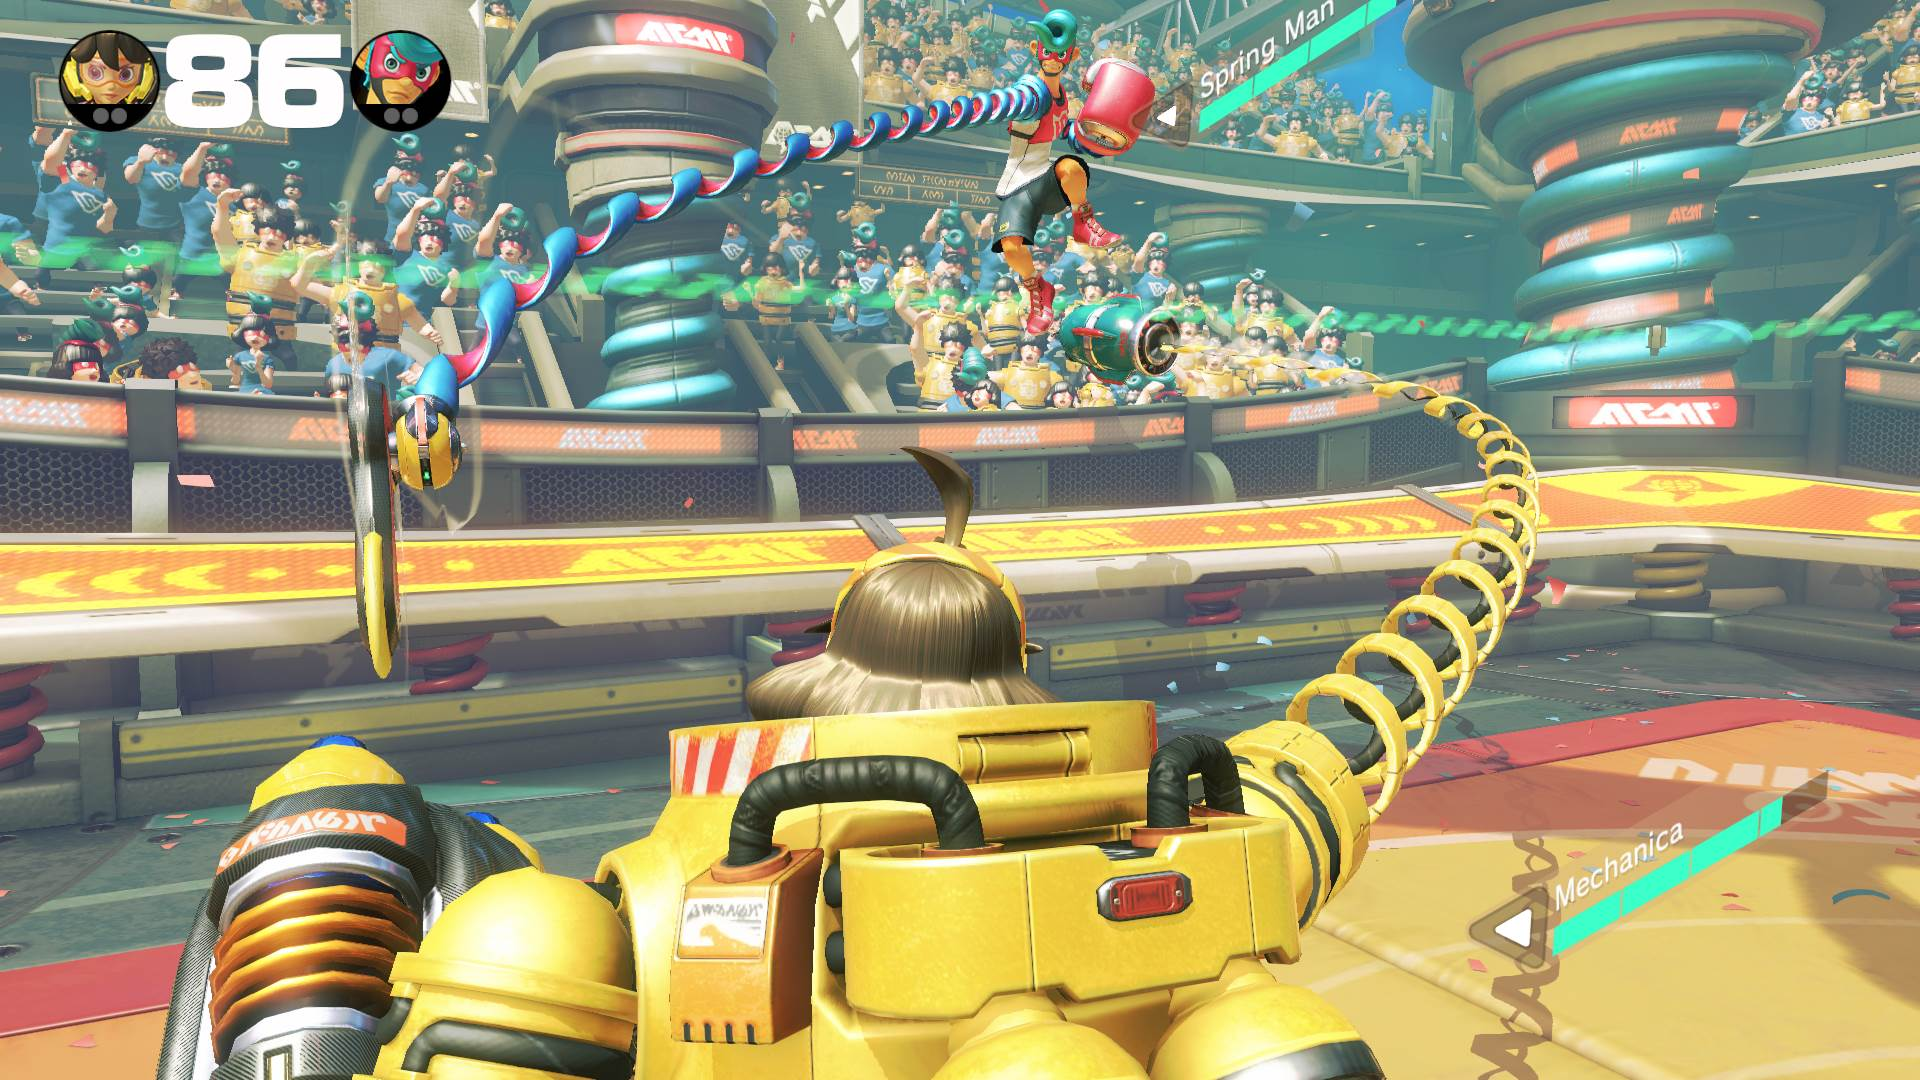 ARMS nintendo switch review